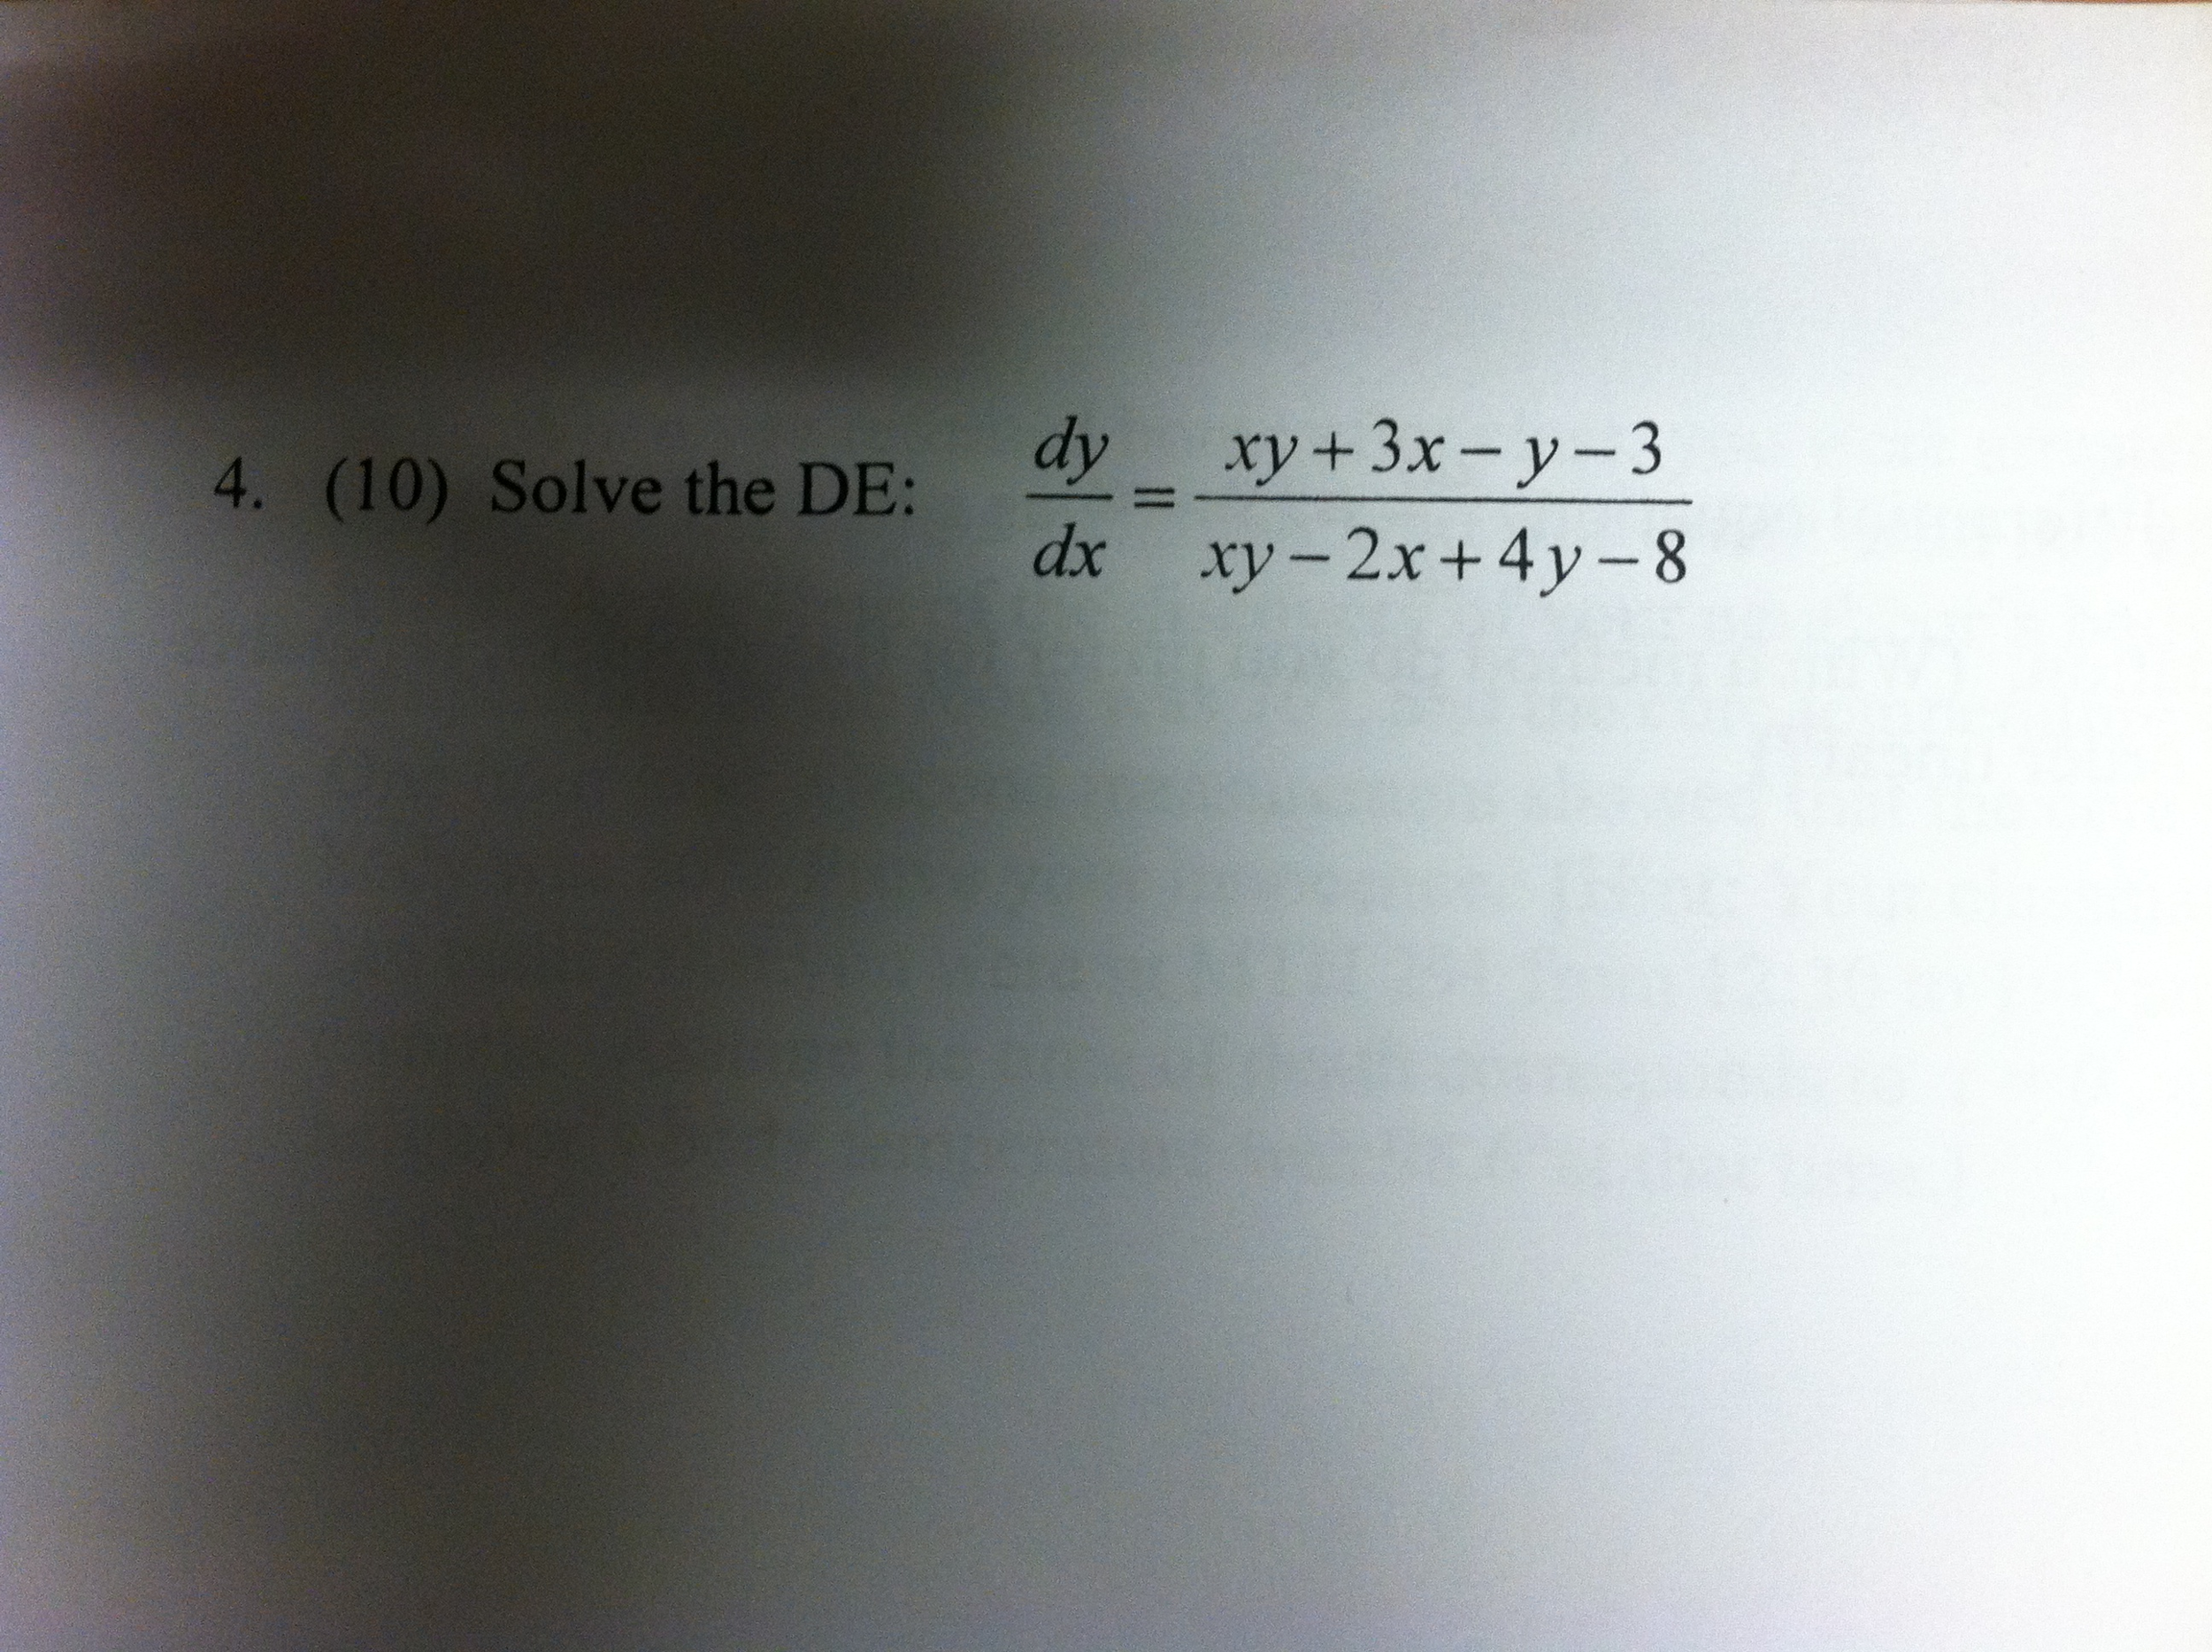 Solve the DE: dy/dx = xy + 3x - y - 3/xy - 2x + 4